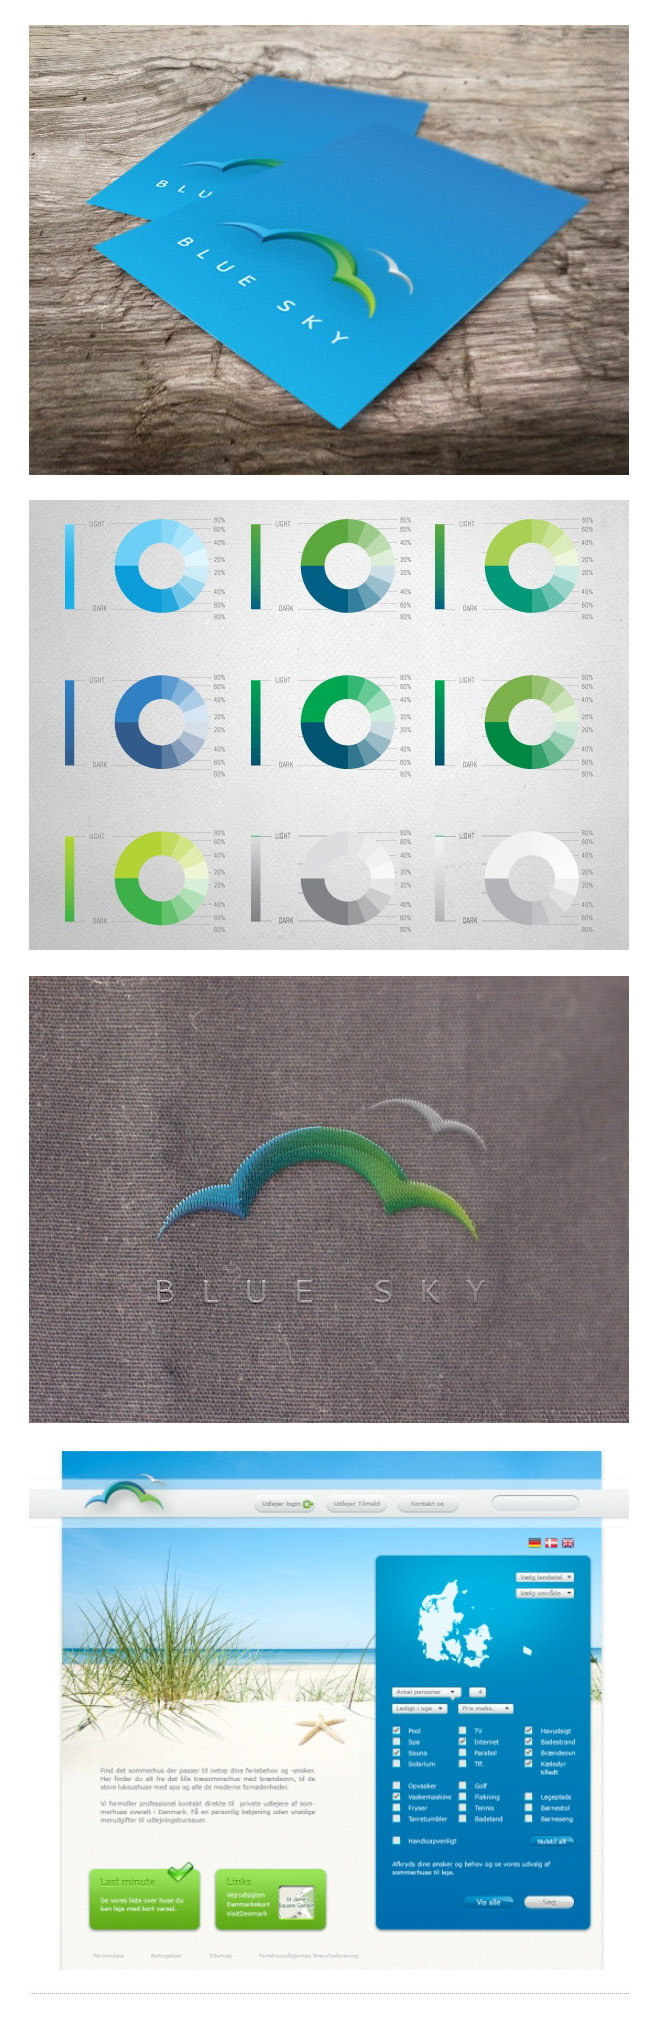 3-blue-sky-best-branding-design